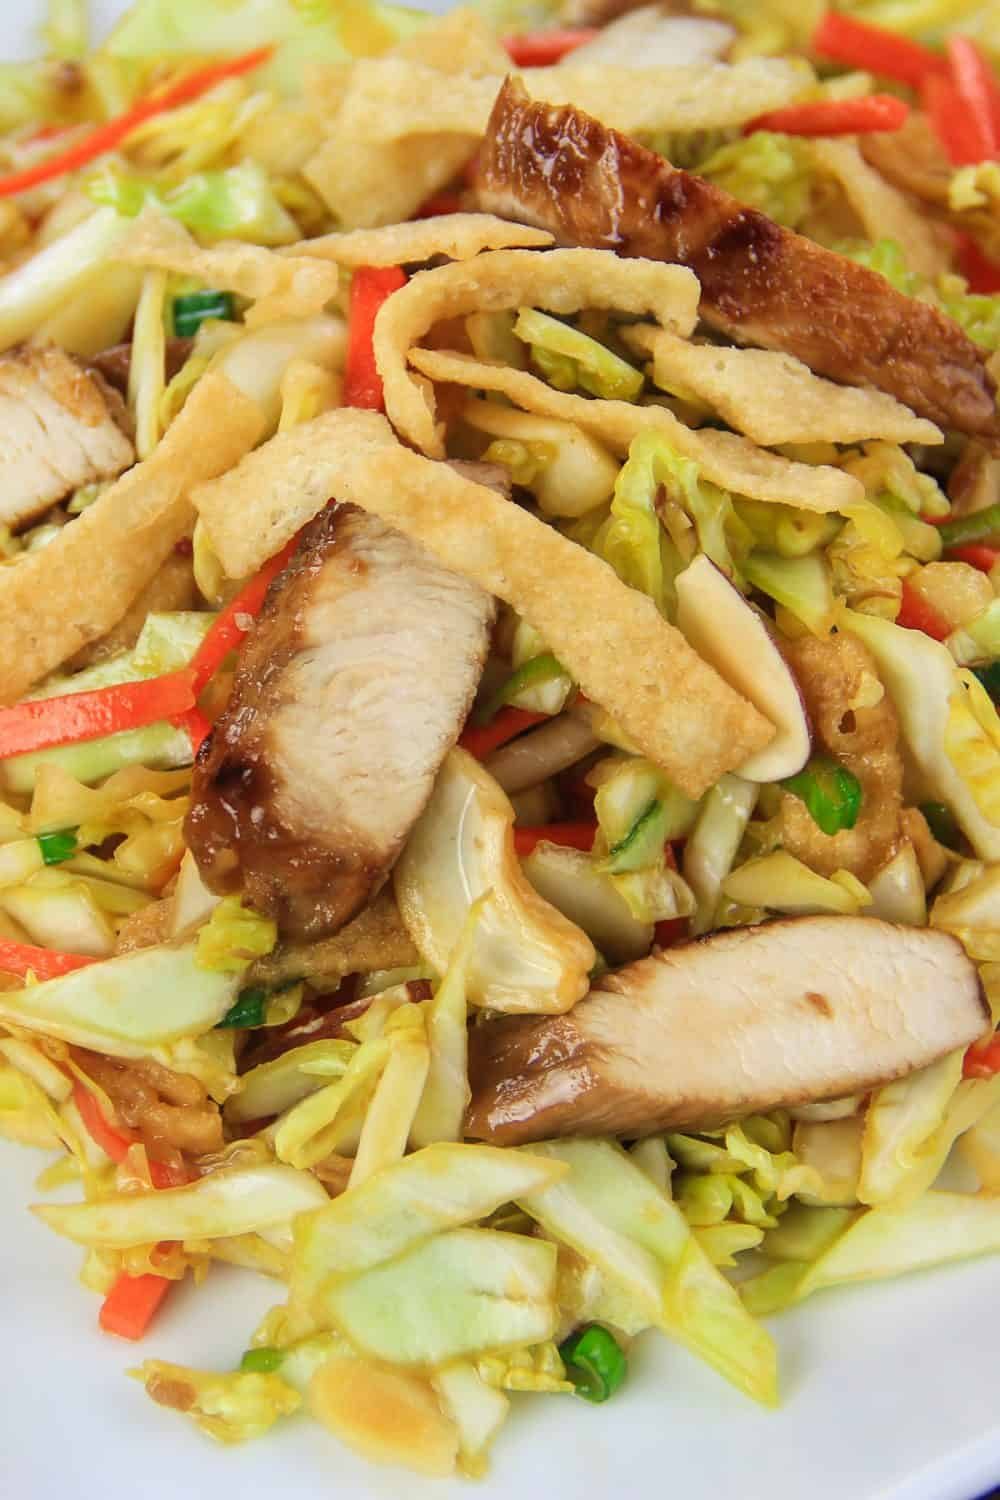 close up image of an asian chicken salad with cooked chicken, shredded cabbage, carrot, cashews, and crispy wontons